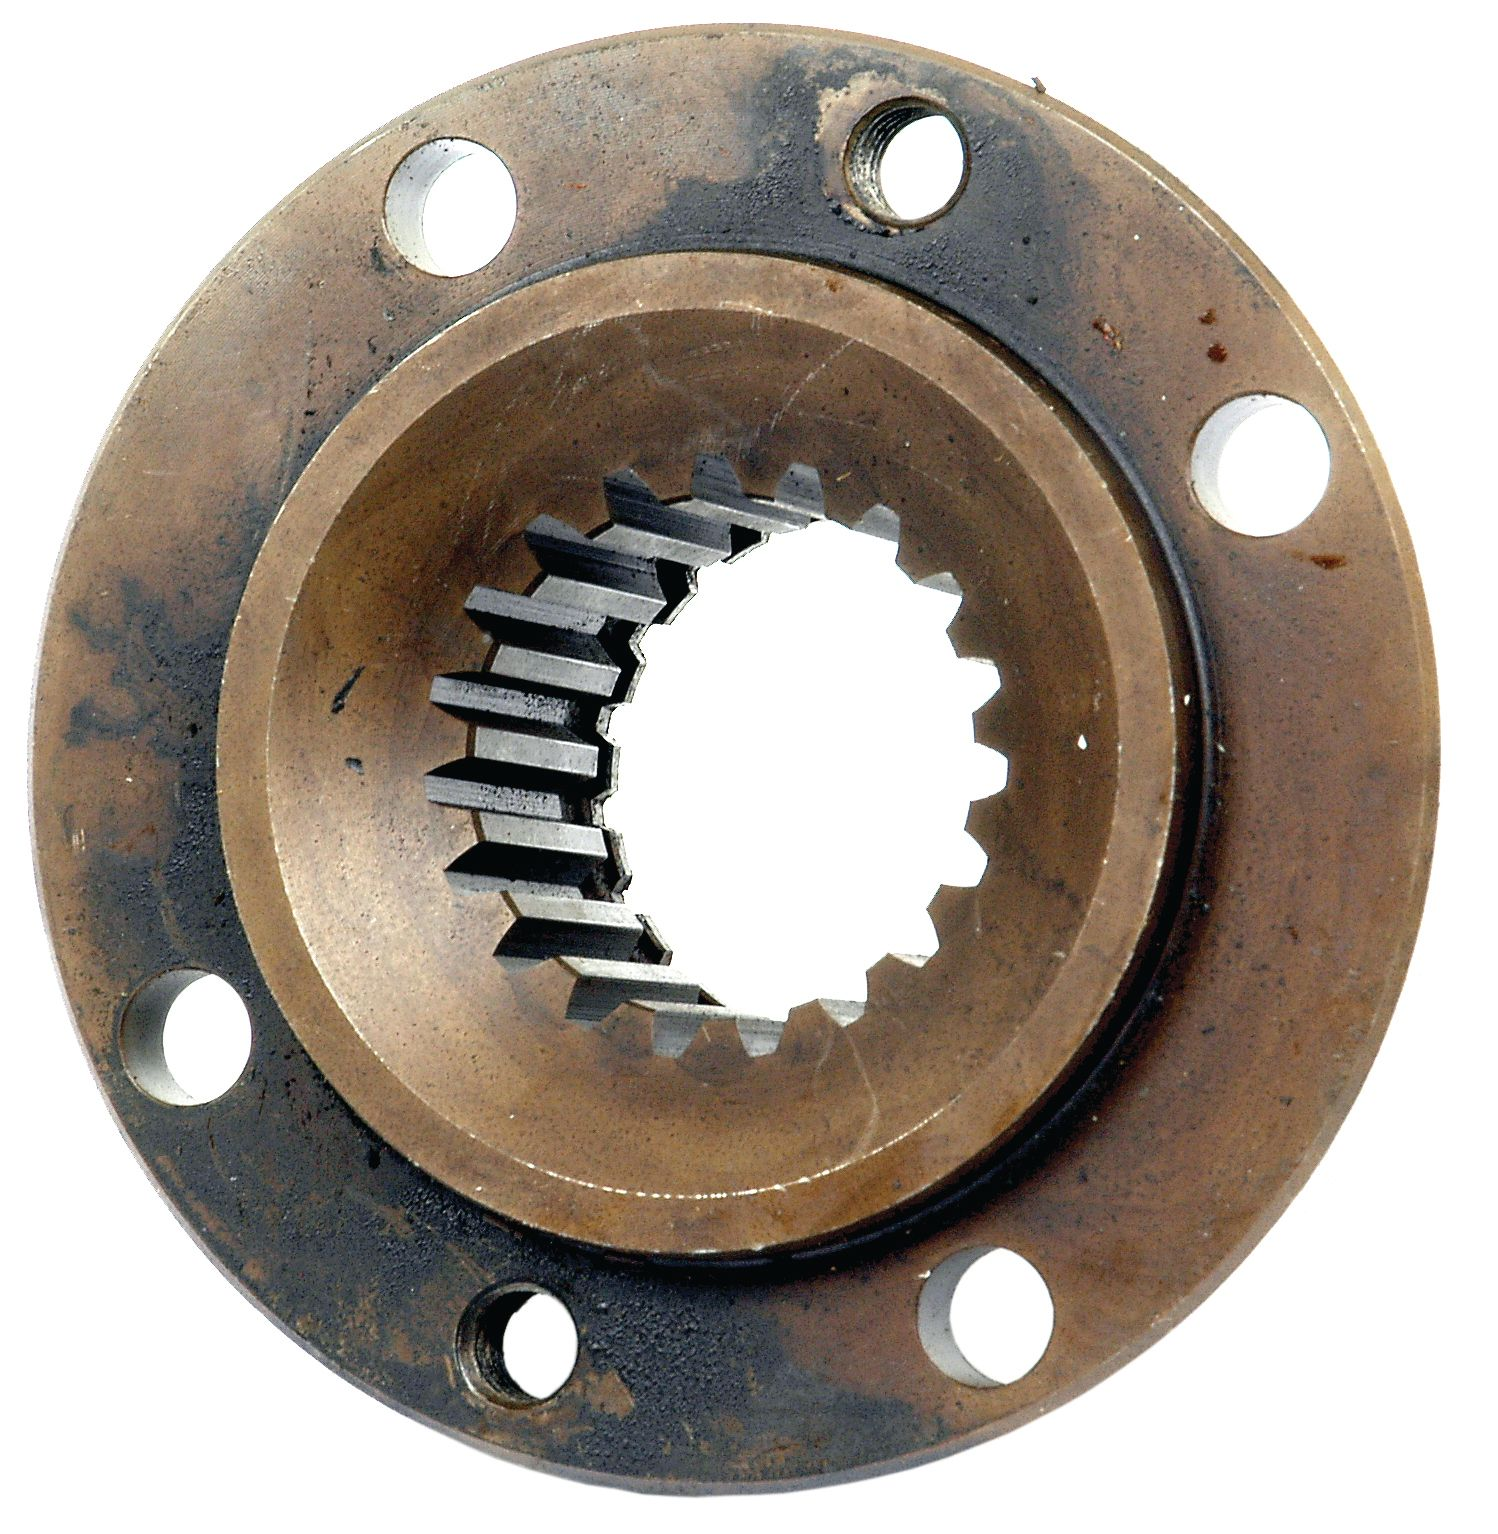 DAVID BROWN COUPLING-CRANK 17437